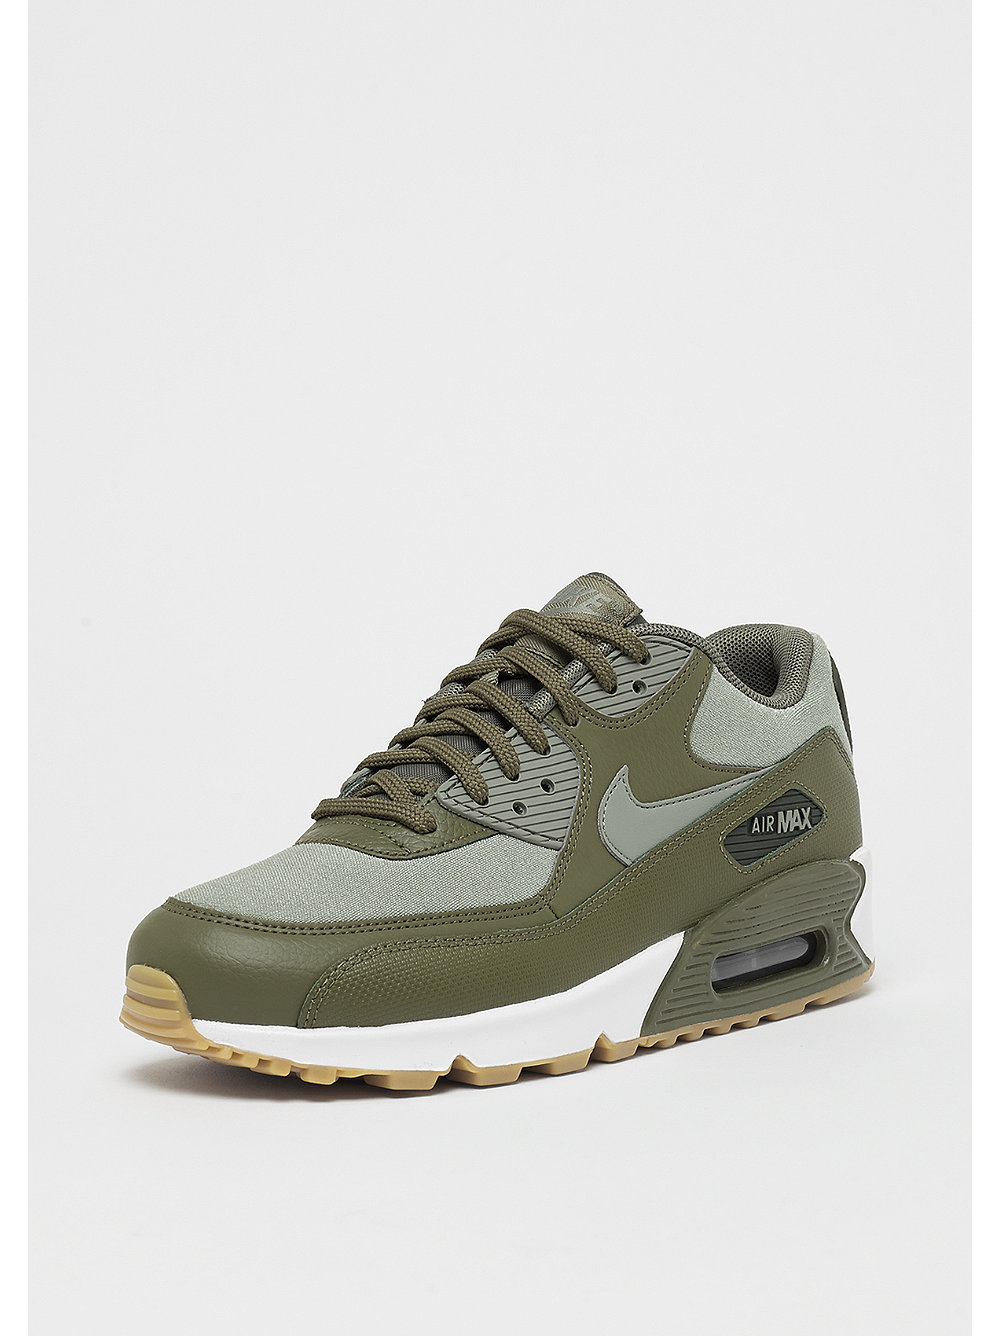 nike wmns air max 90 medium olive dark stucco sequoia bei. Black Bedroom Furniture Sets. Home Design Ideas